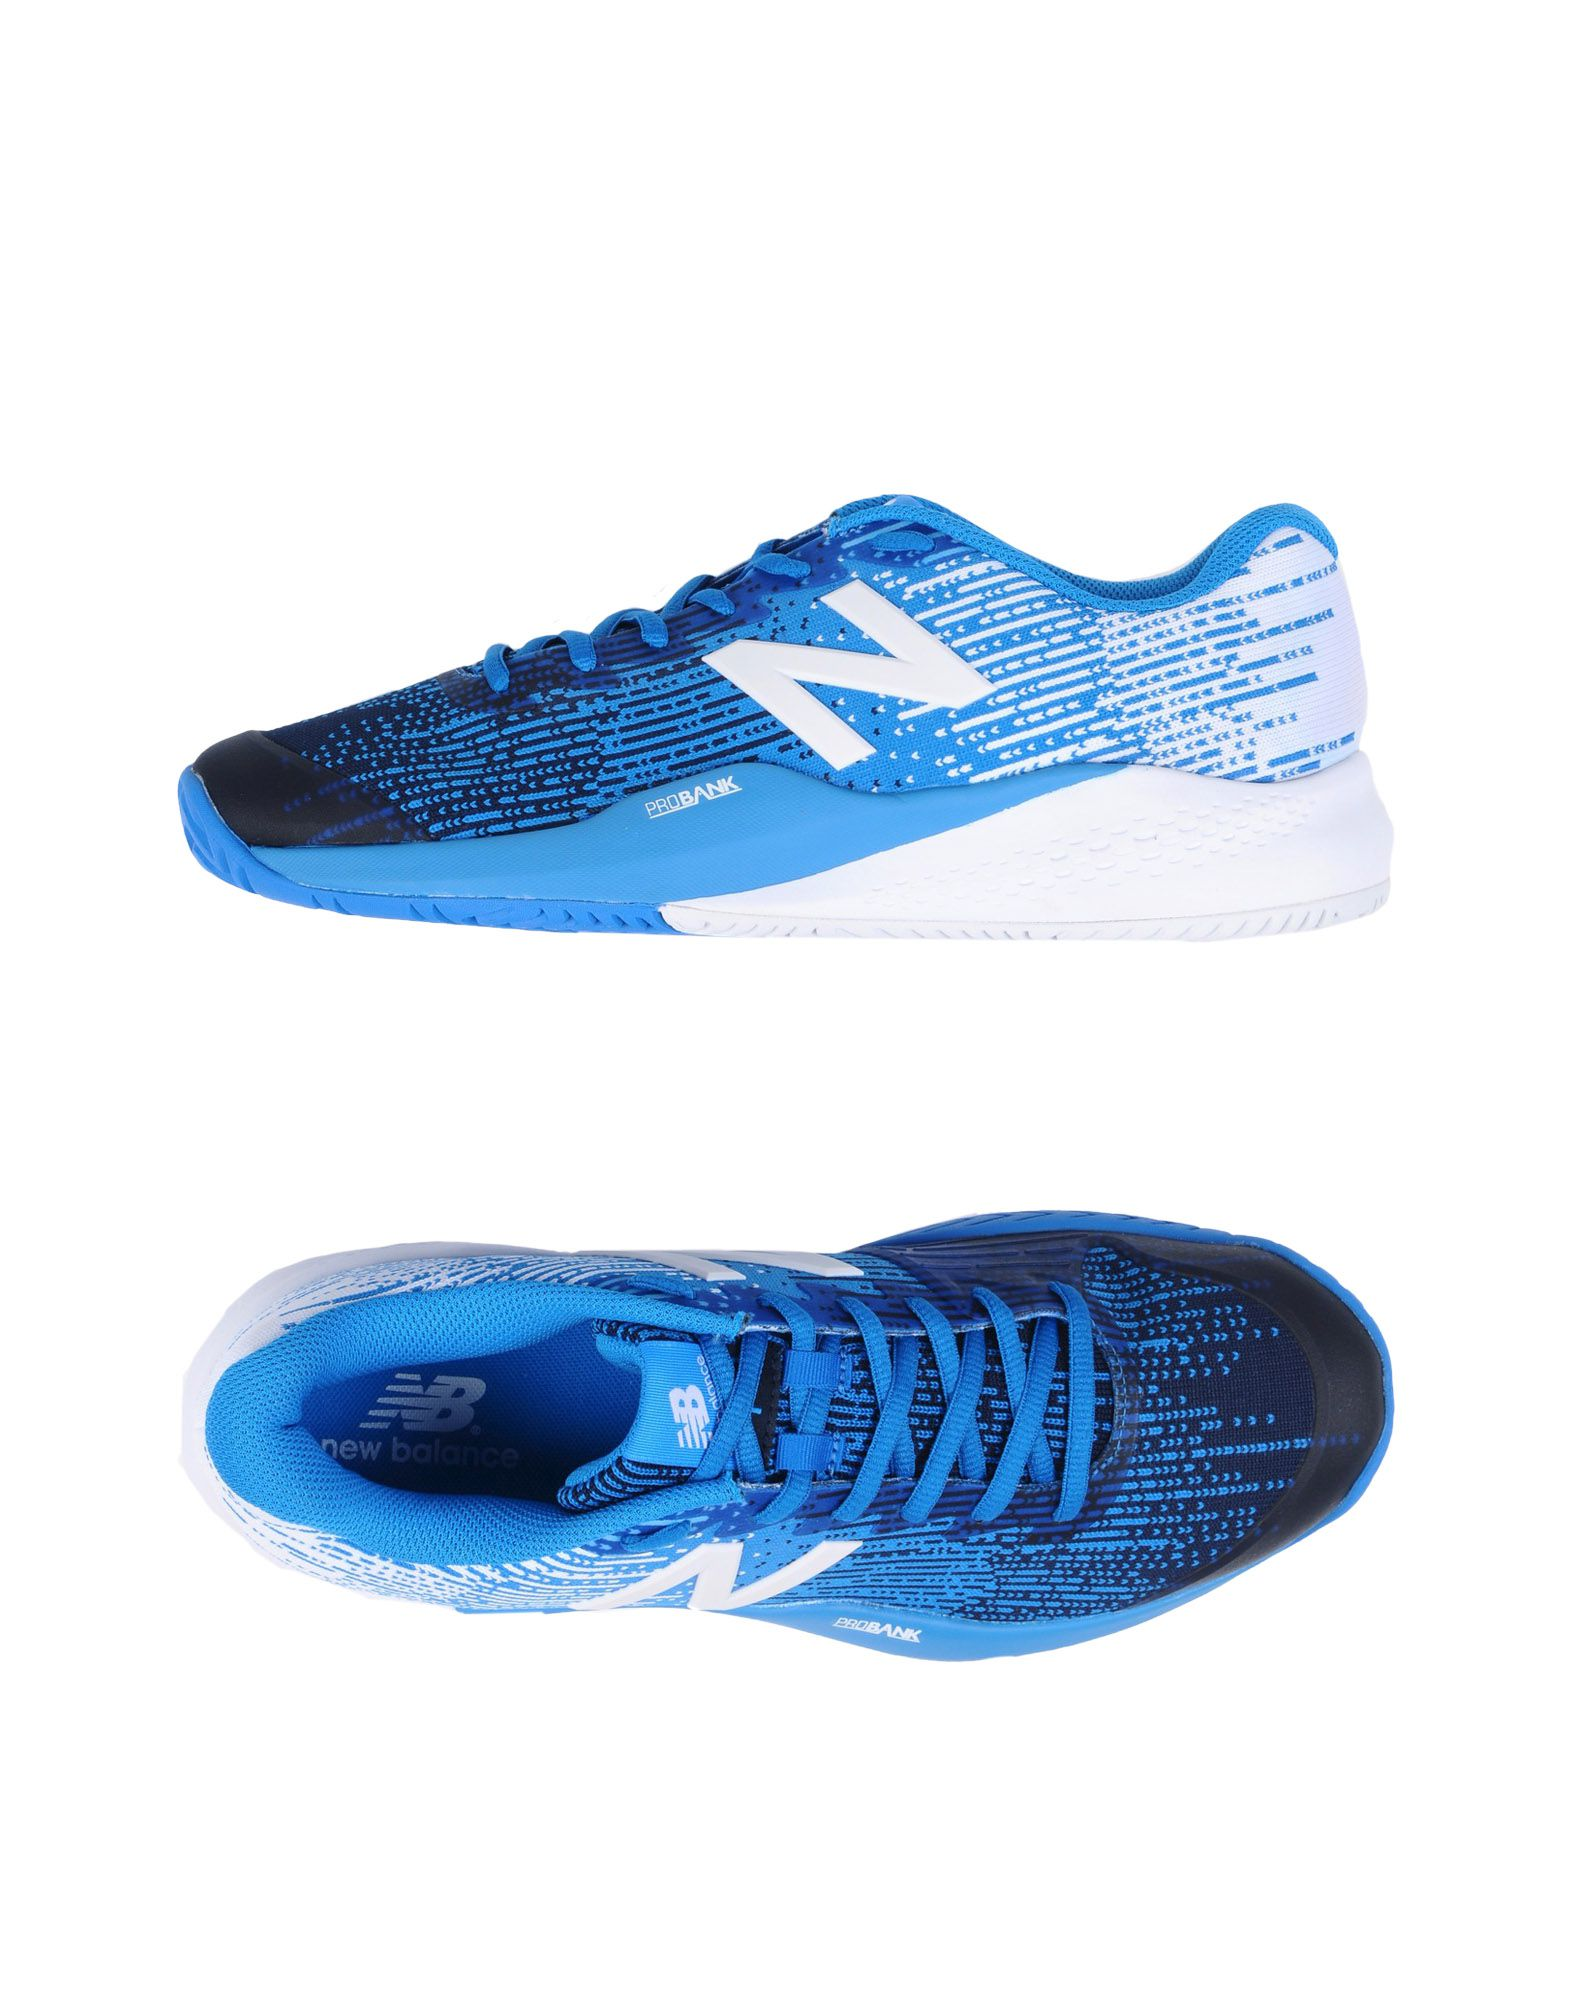 Sneakers New Balance 996V3 Tennis Speed Hard Court - Homme - Sneakers New Balance sur